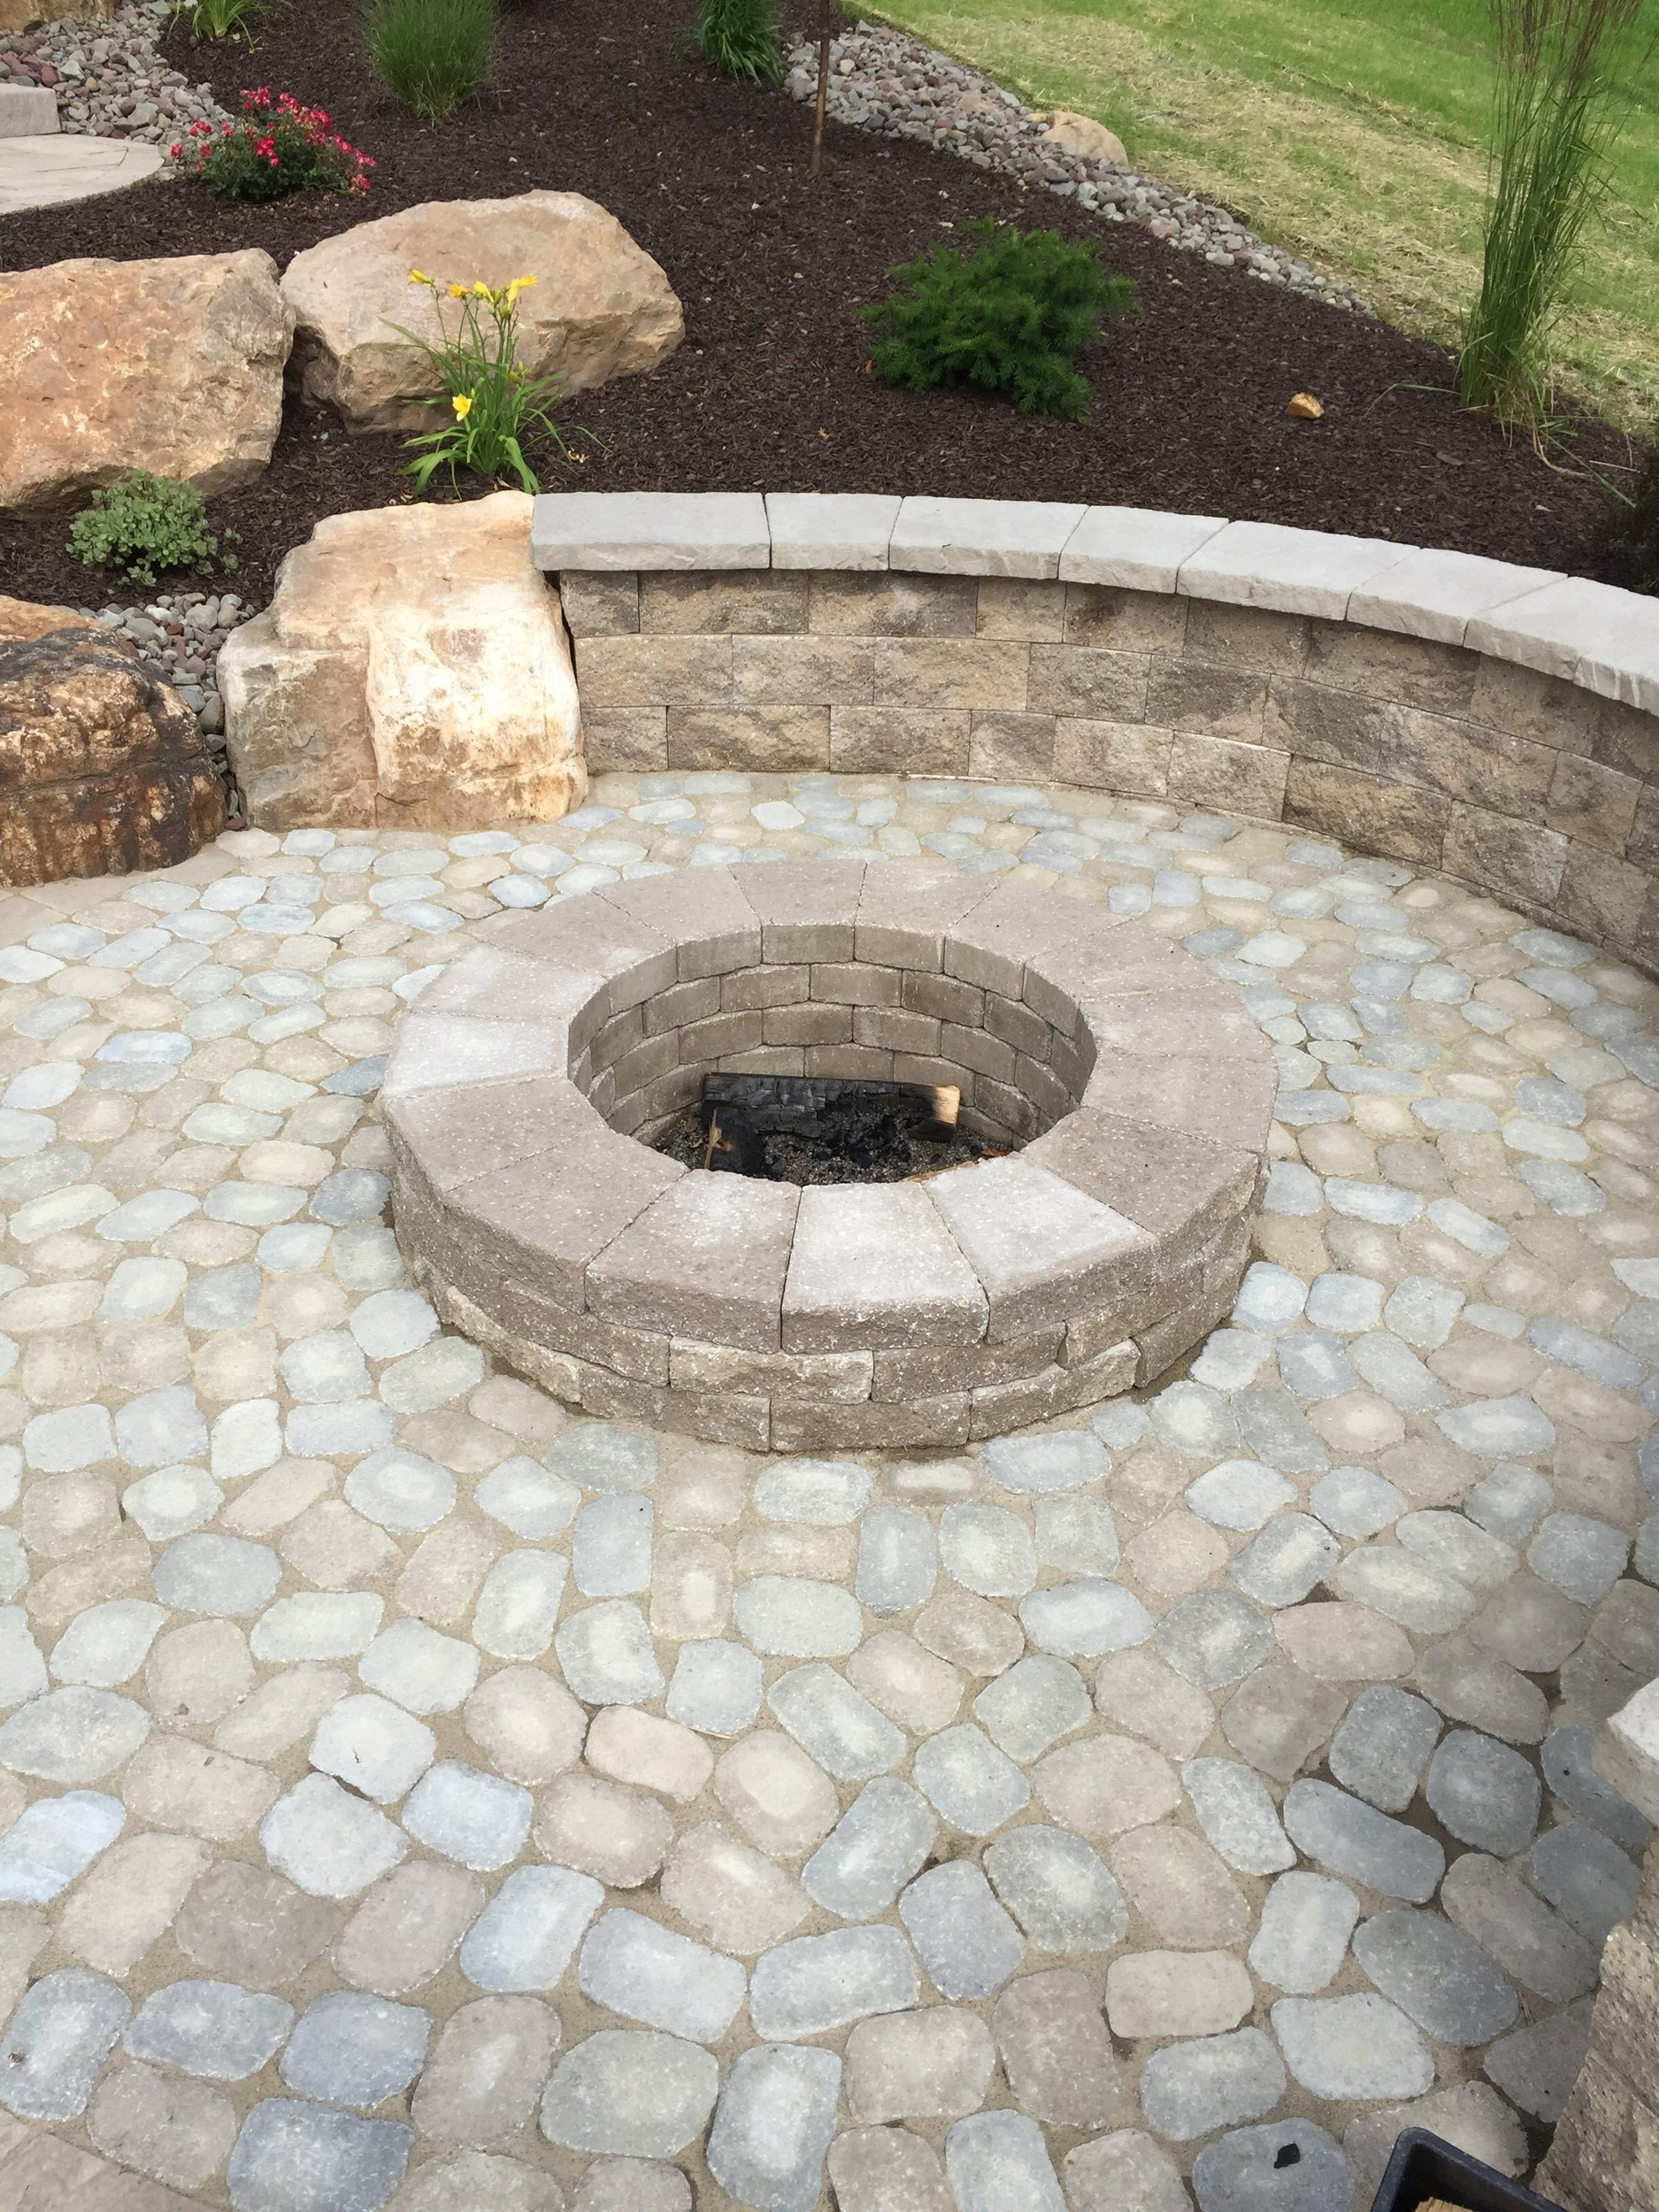 Professional landscape design with a fire pit in Lebanon, PA